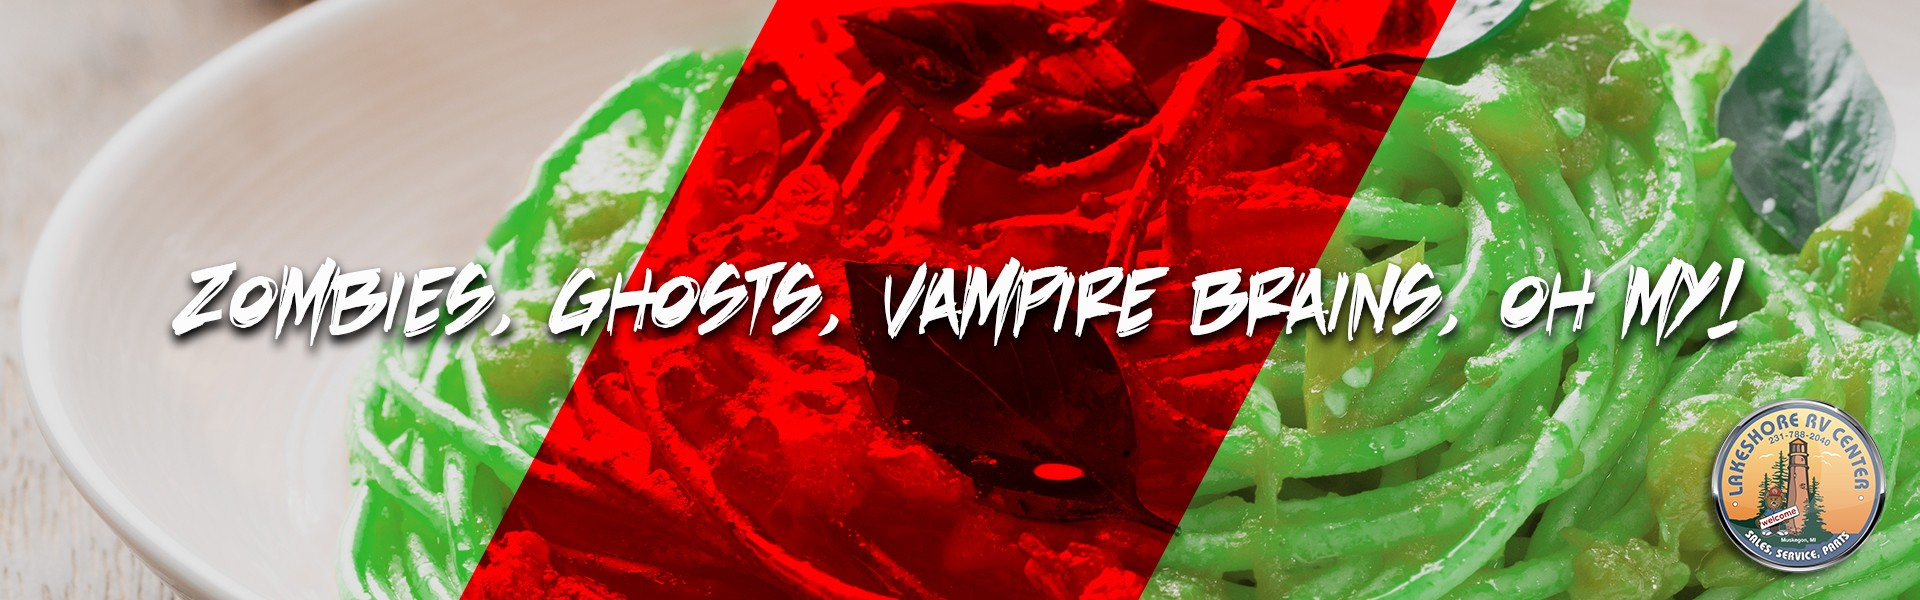 Zombies, ghosts, vampire brains, oh my! Green spaghetti dinner.